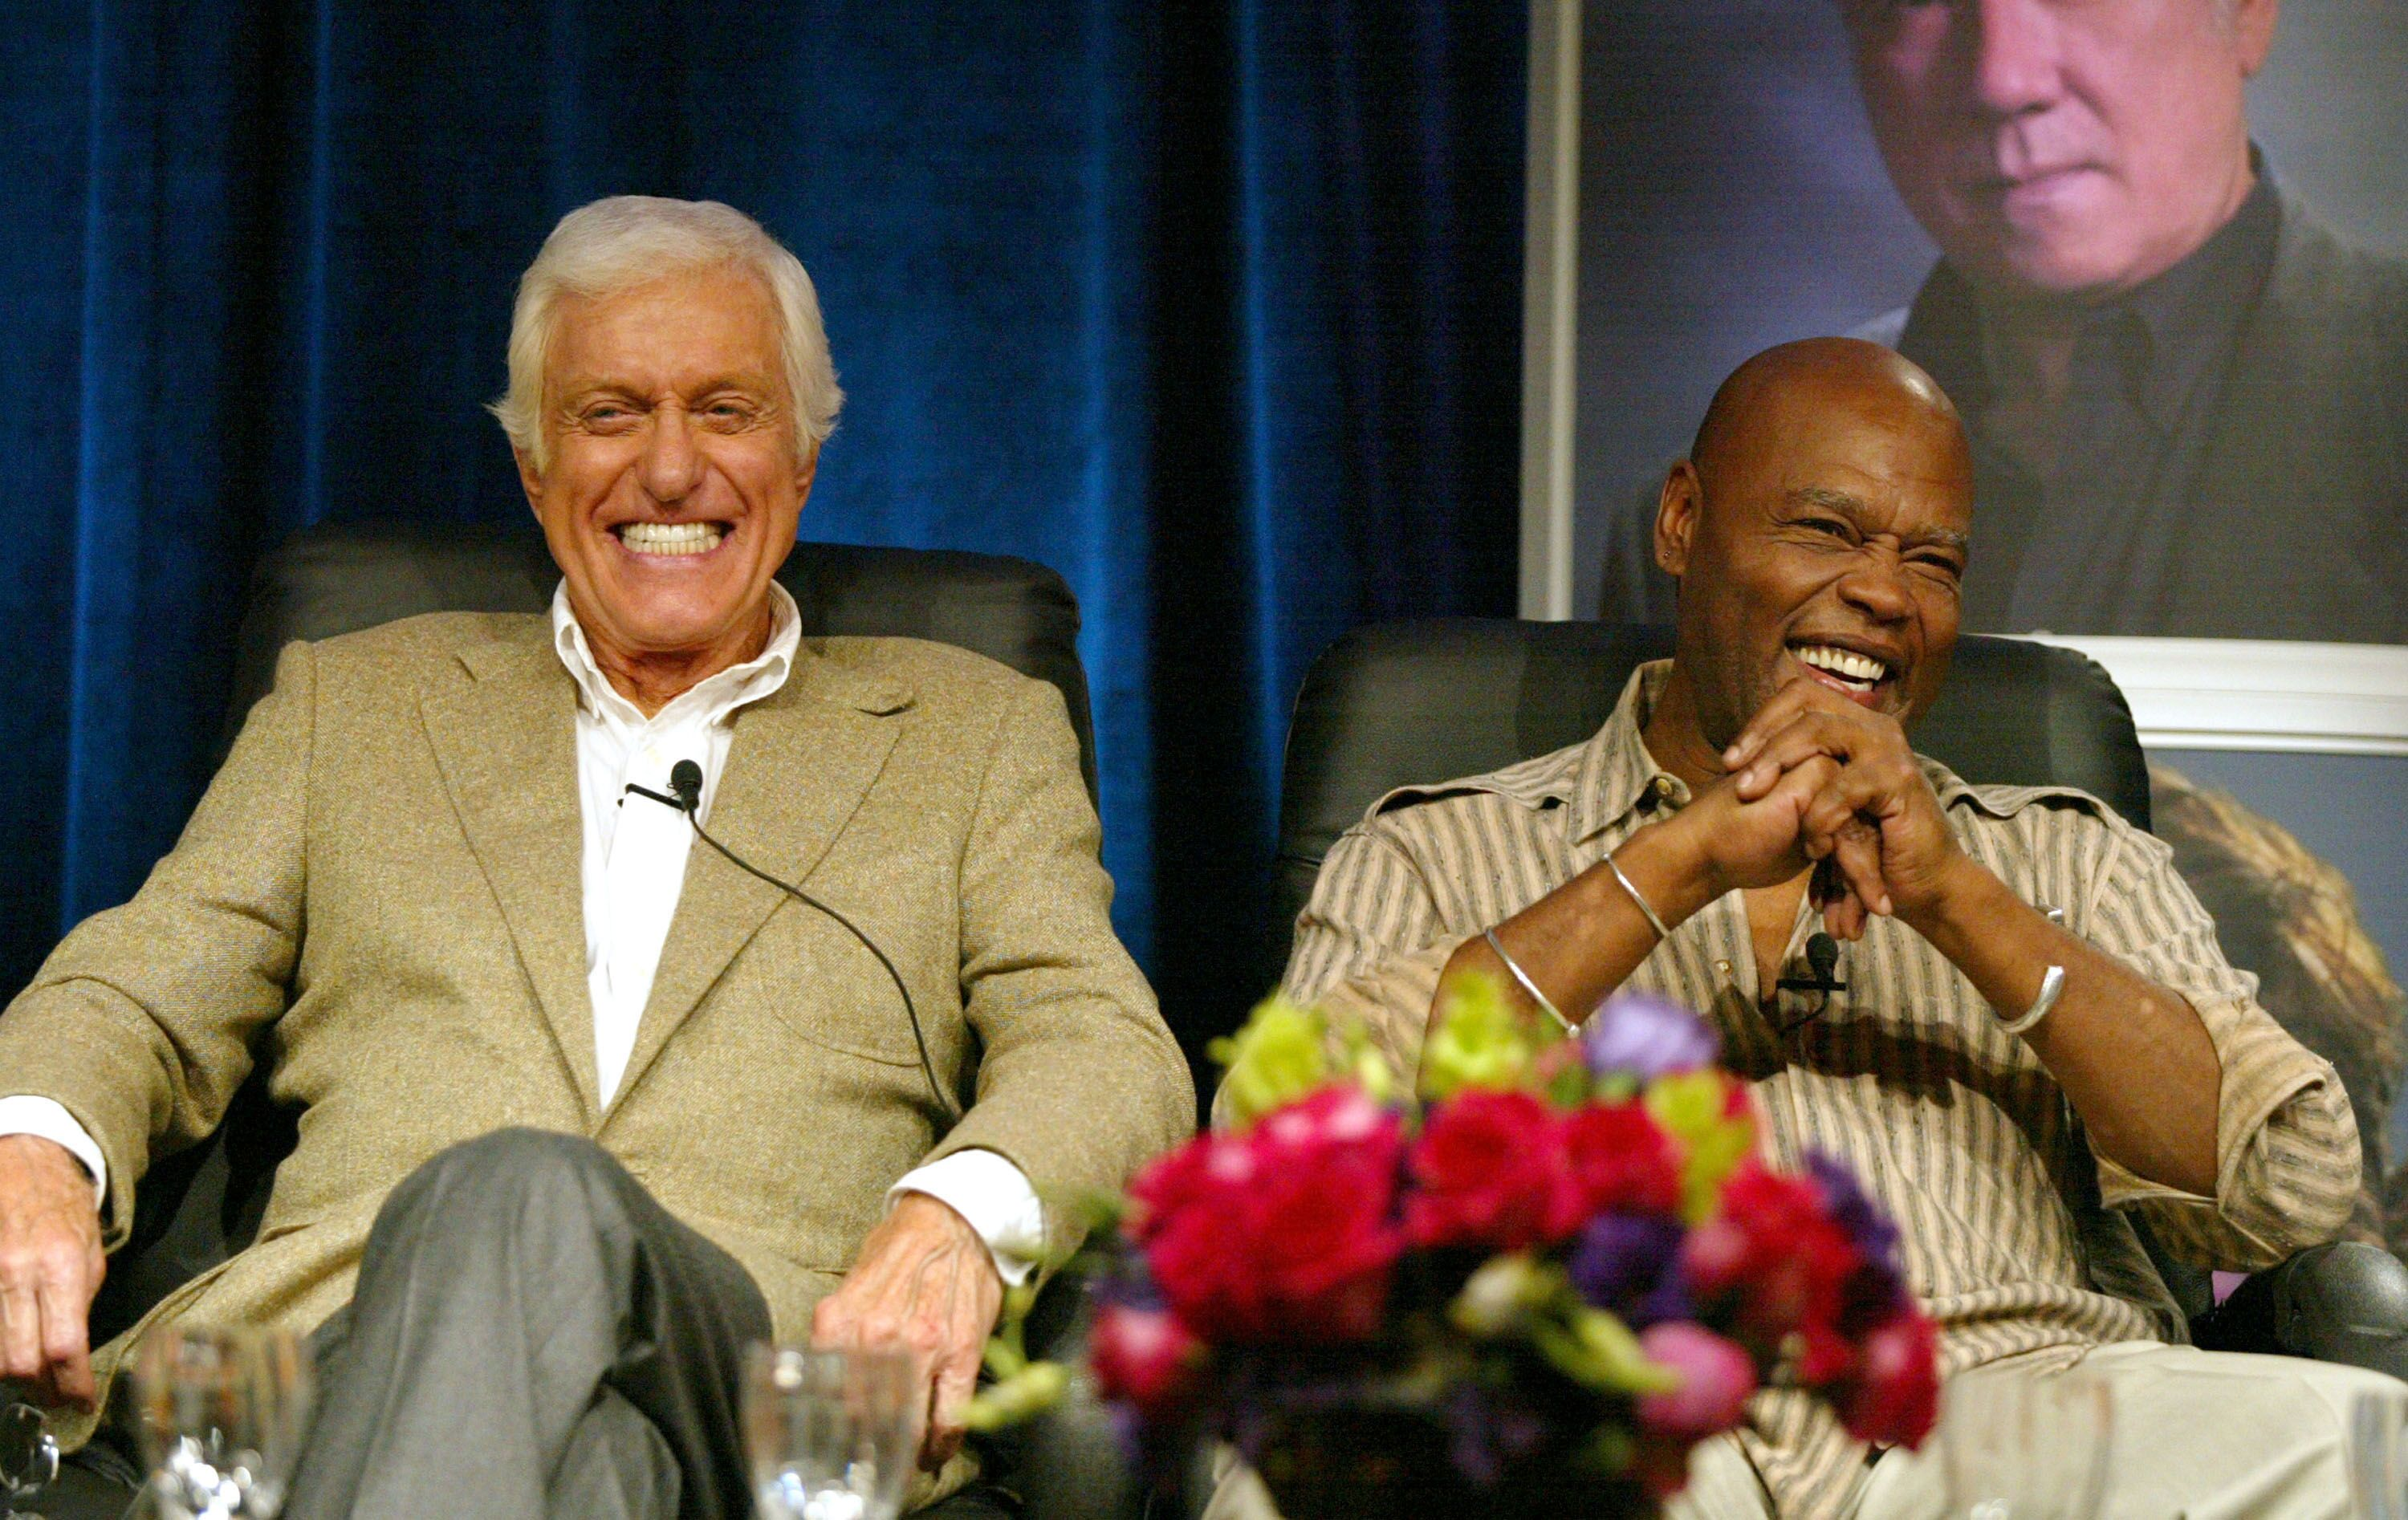 Dick Van Dyke and GeorgStanford Brown at a Hallmark Channel presentation on July 16, 2005 in Beverly Hills | Photo: Getty Images